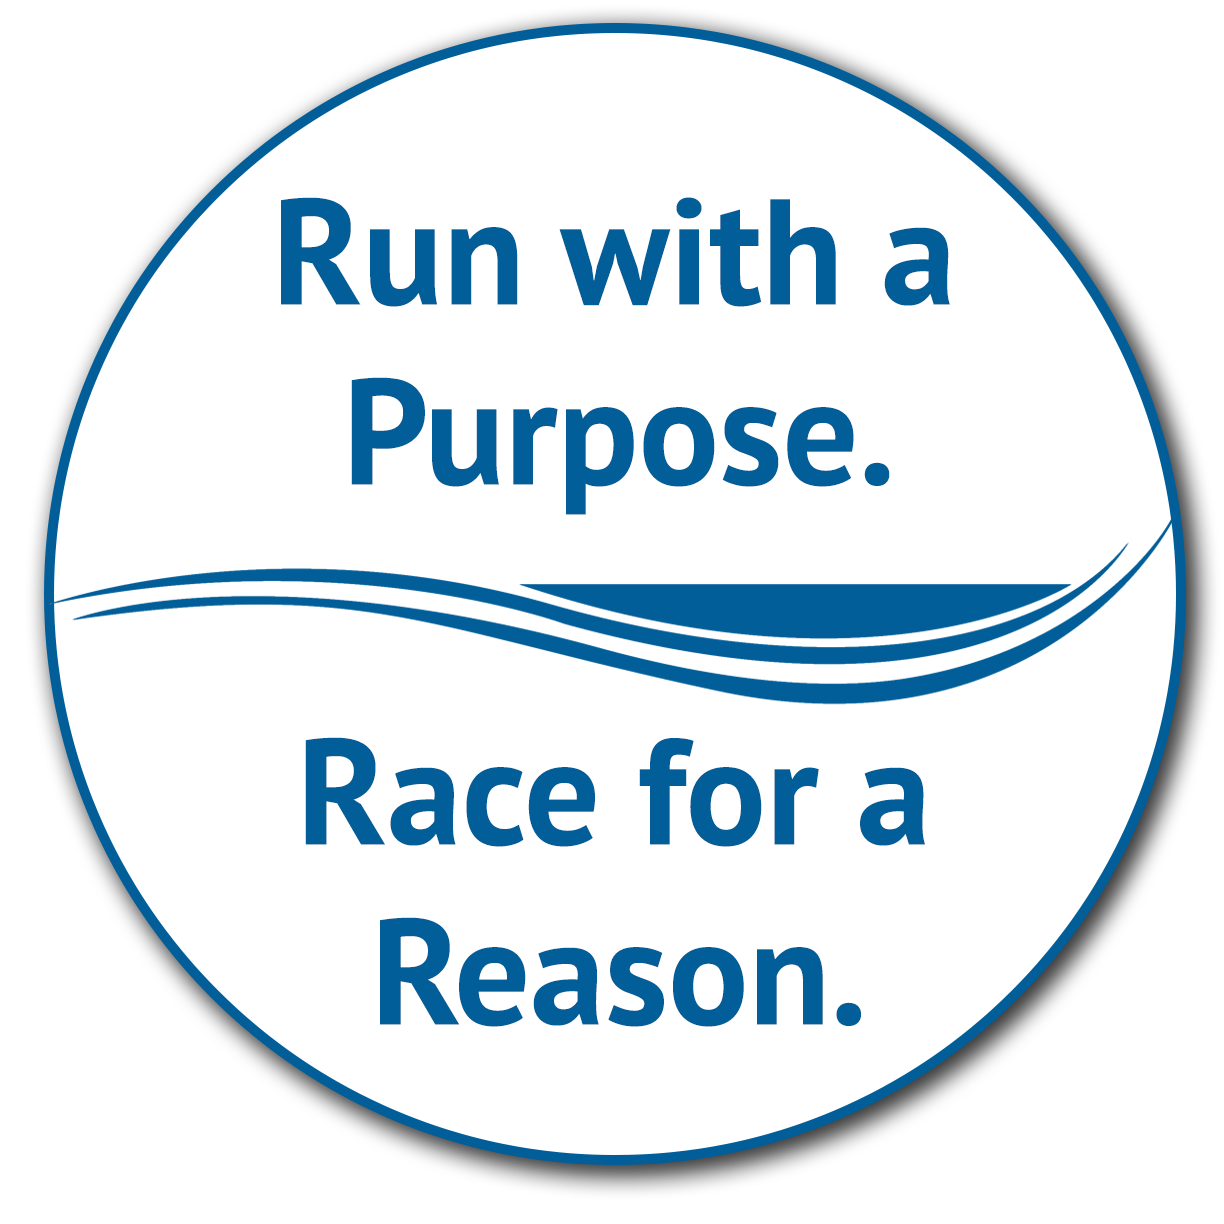 OhioHealth O'Bleness Hospital Race for a Reason 2017 Photo